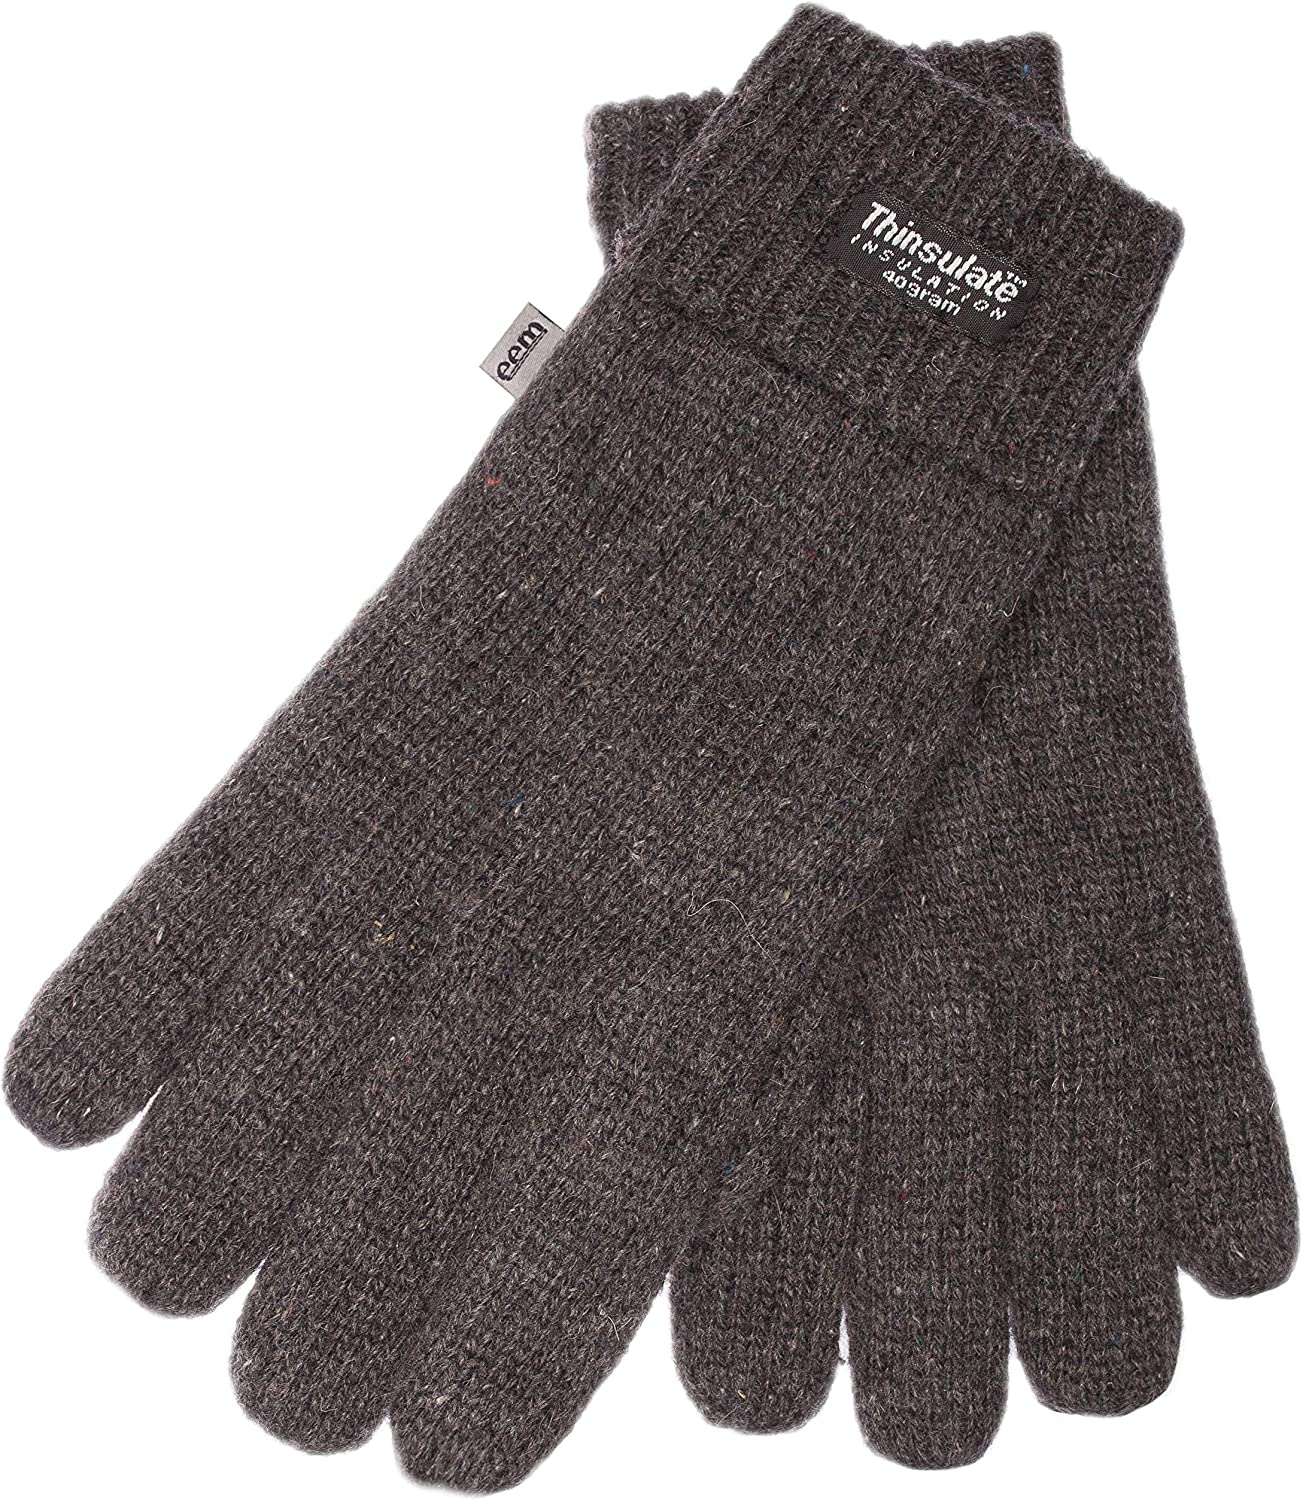 EEM Men's Knitted Gloves LASSE with Thinsulate thermal lining